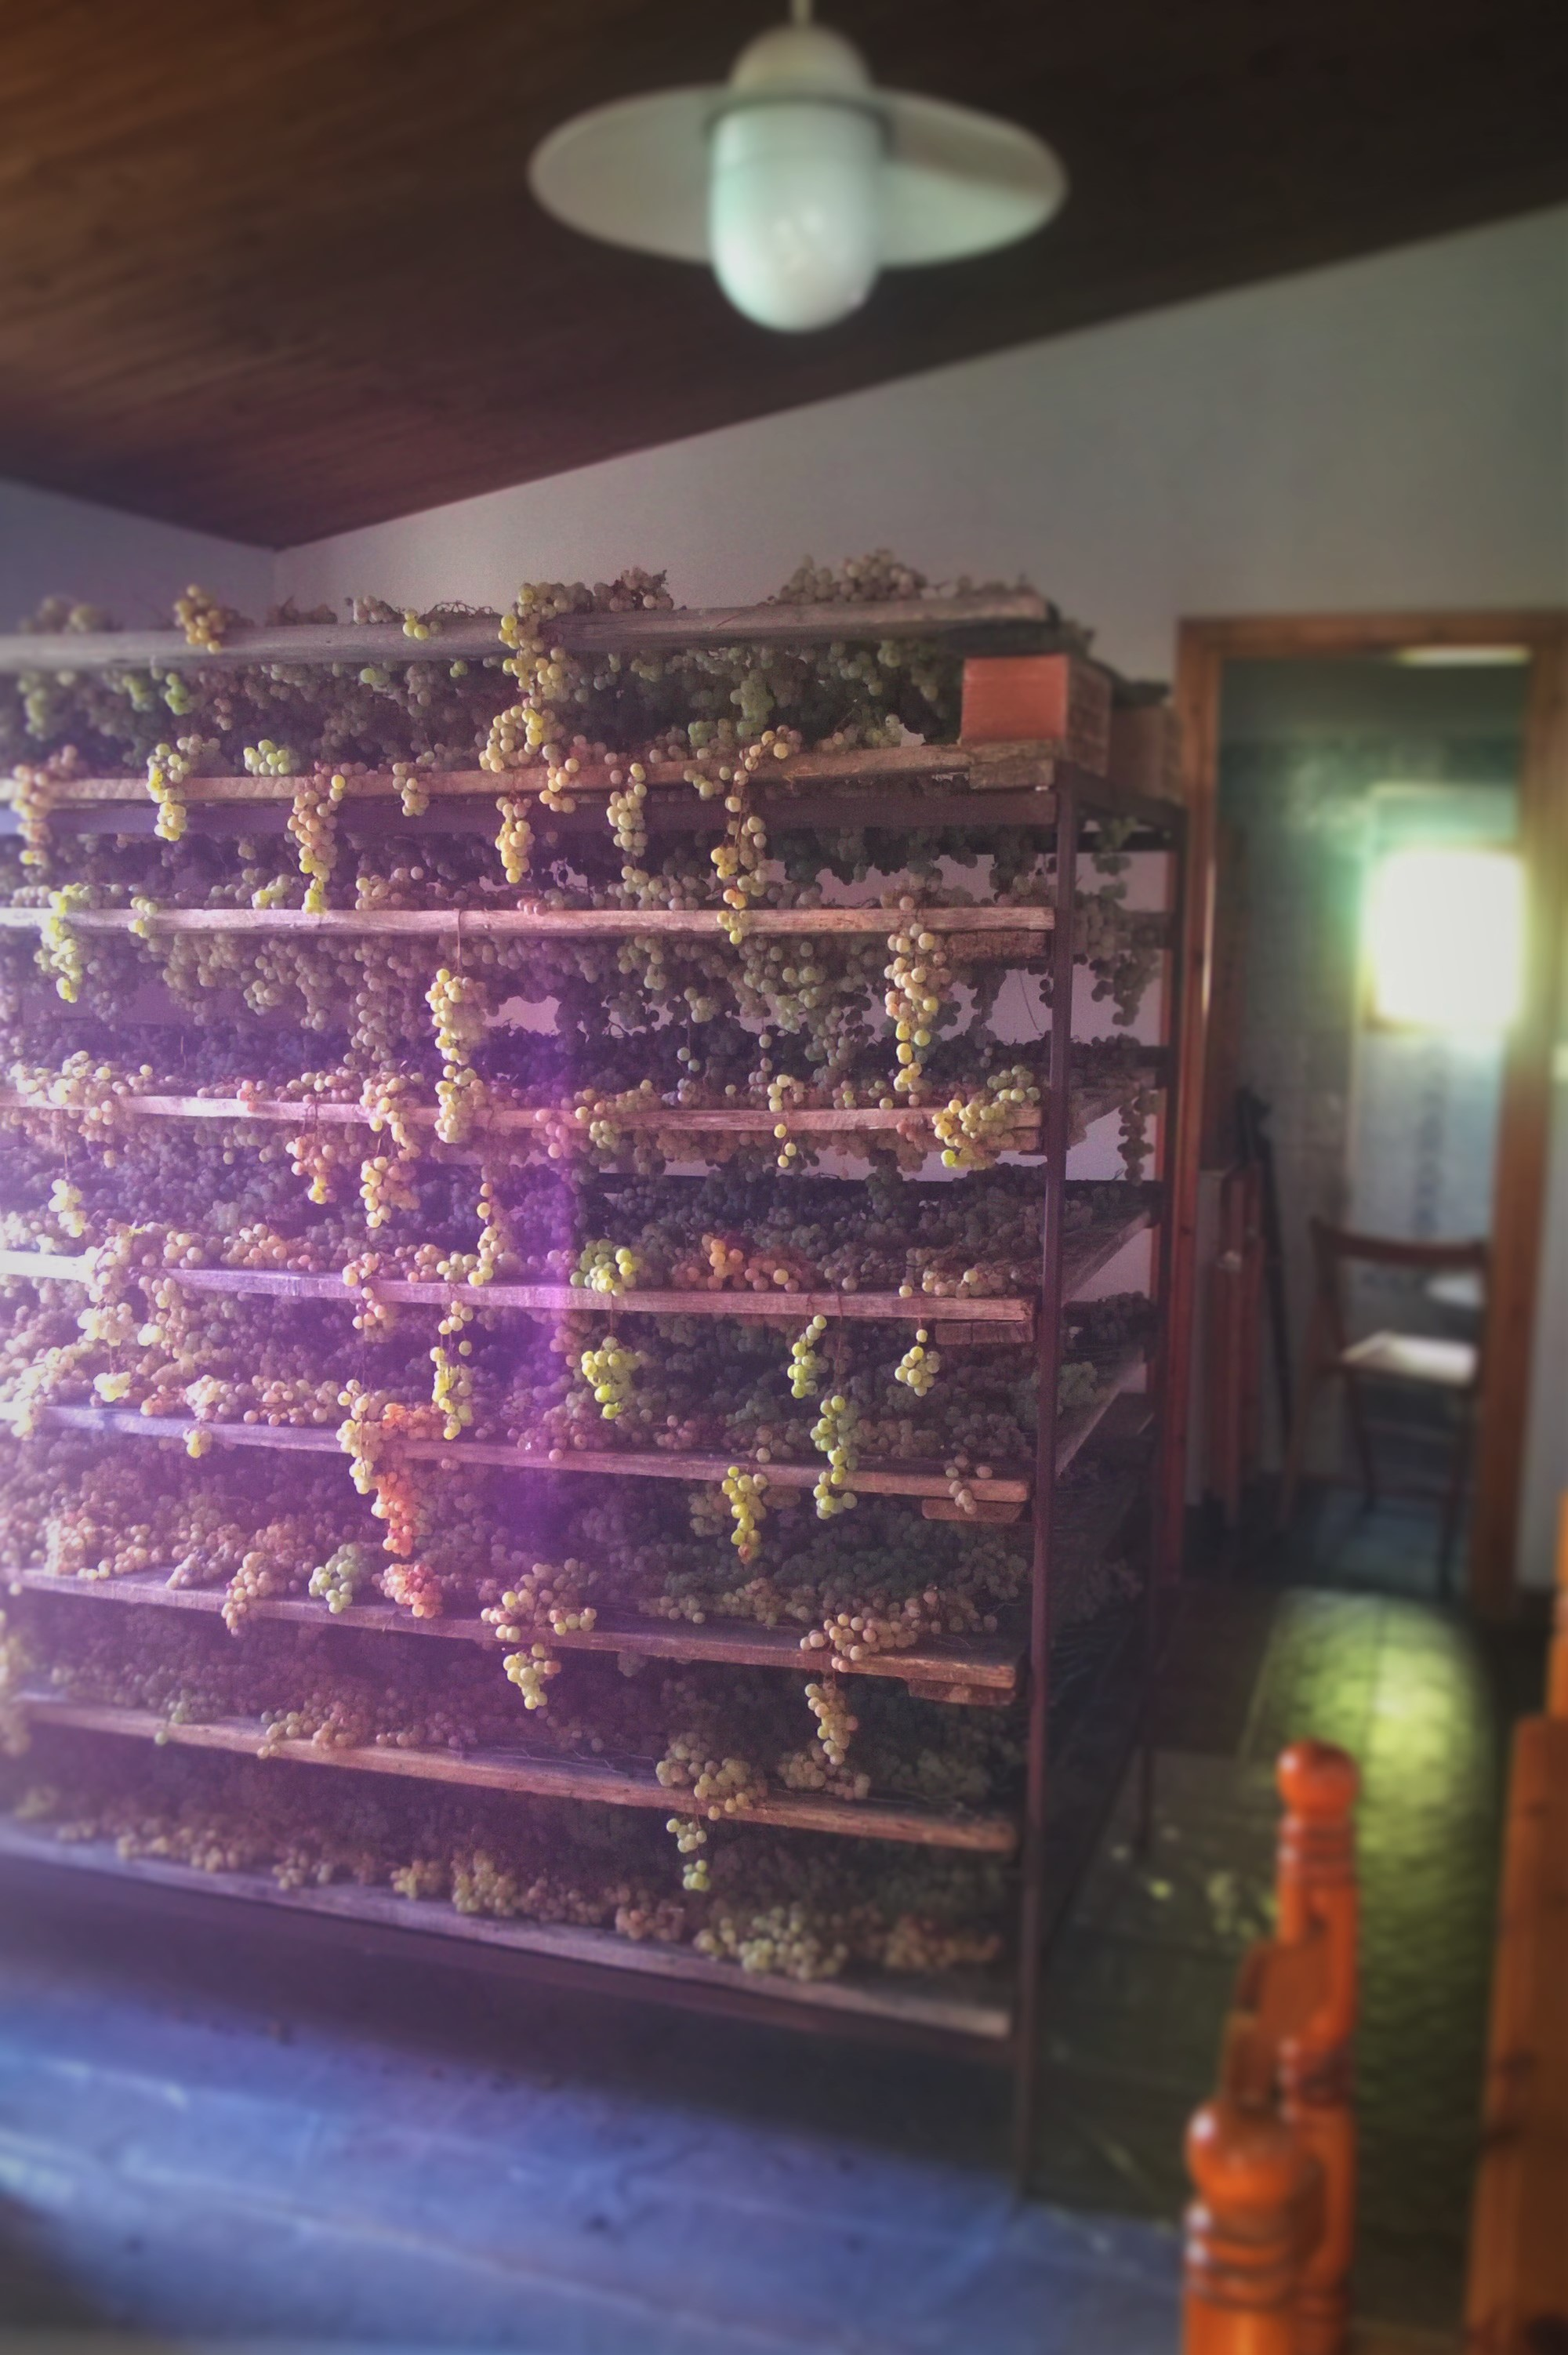 Grapes drying in the middle of the house